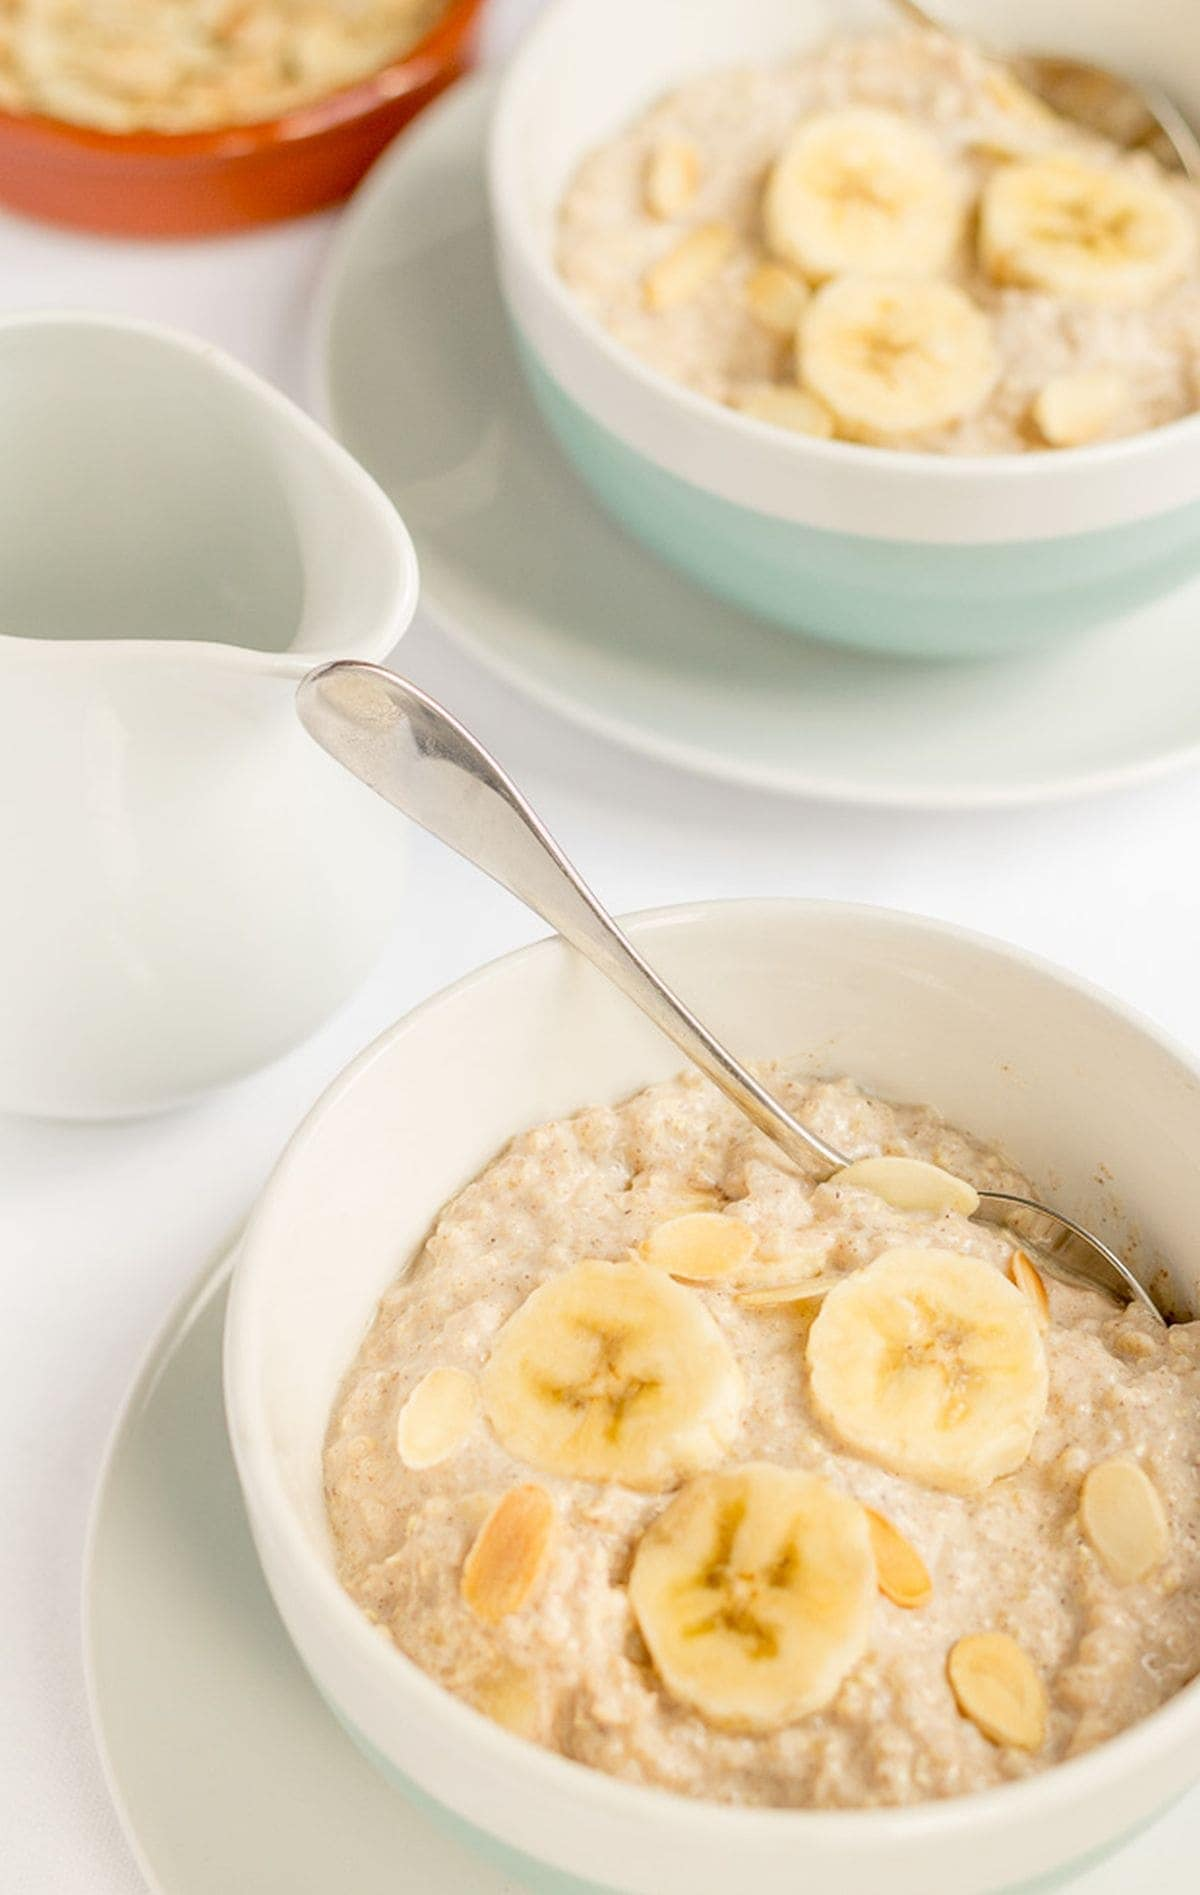 Two bowls of banana almond overnight quinoa. Front bowl with a spoon in it. Milk jug to the side. Other bowl to the back.